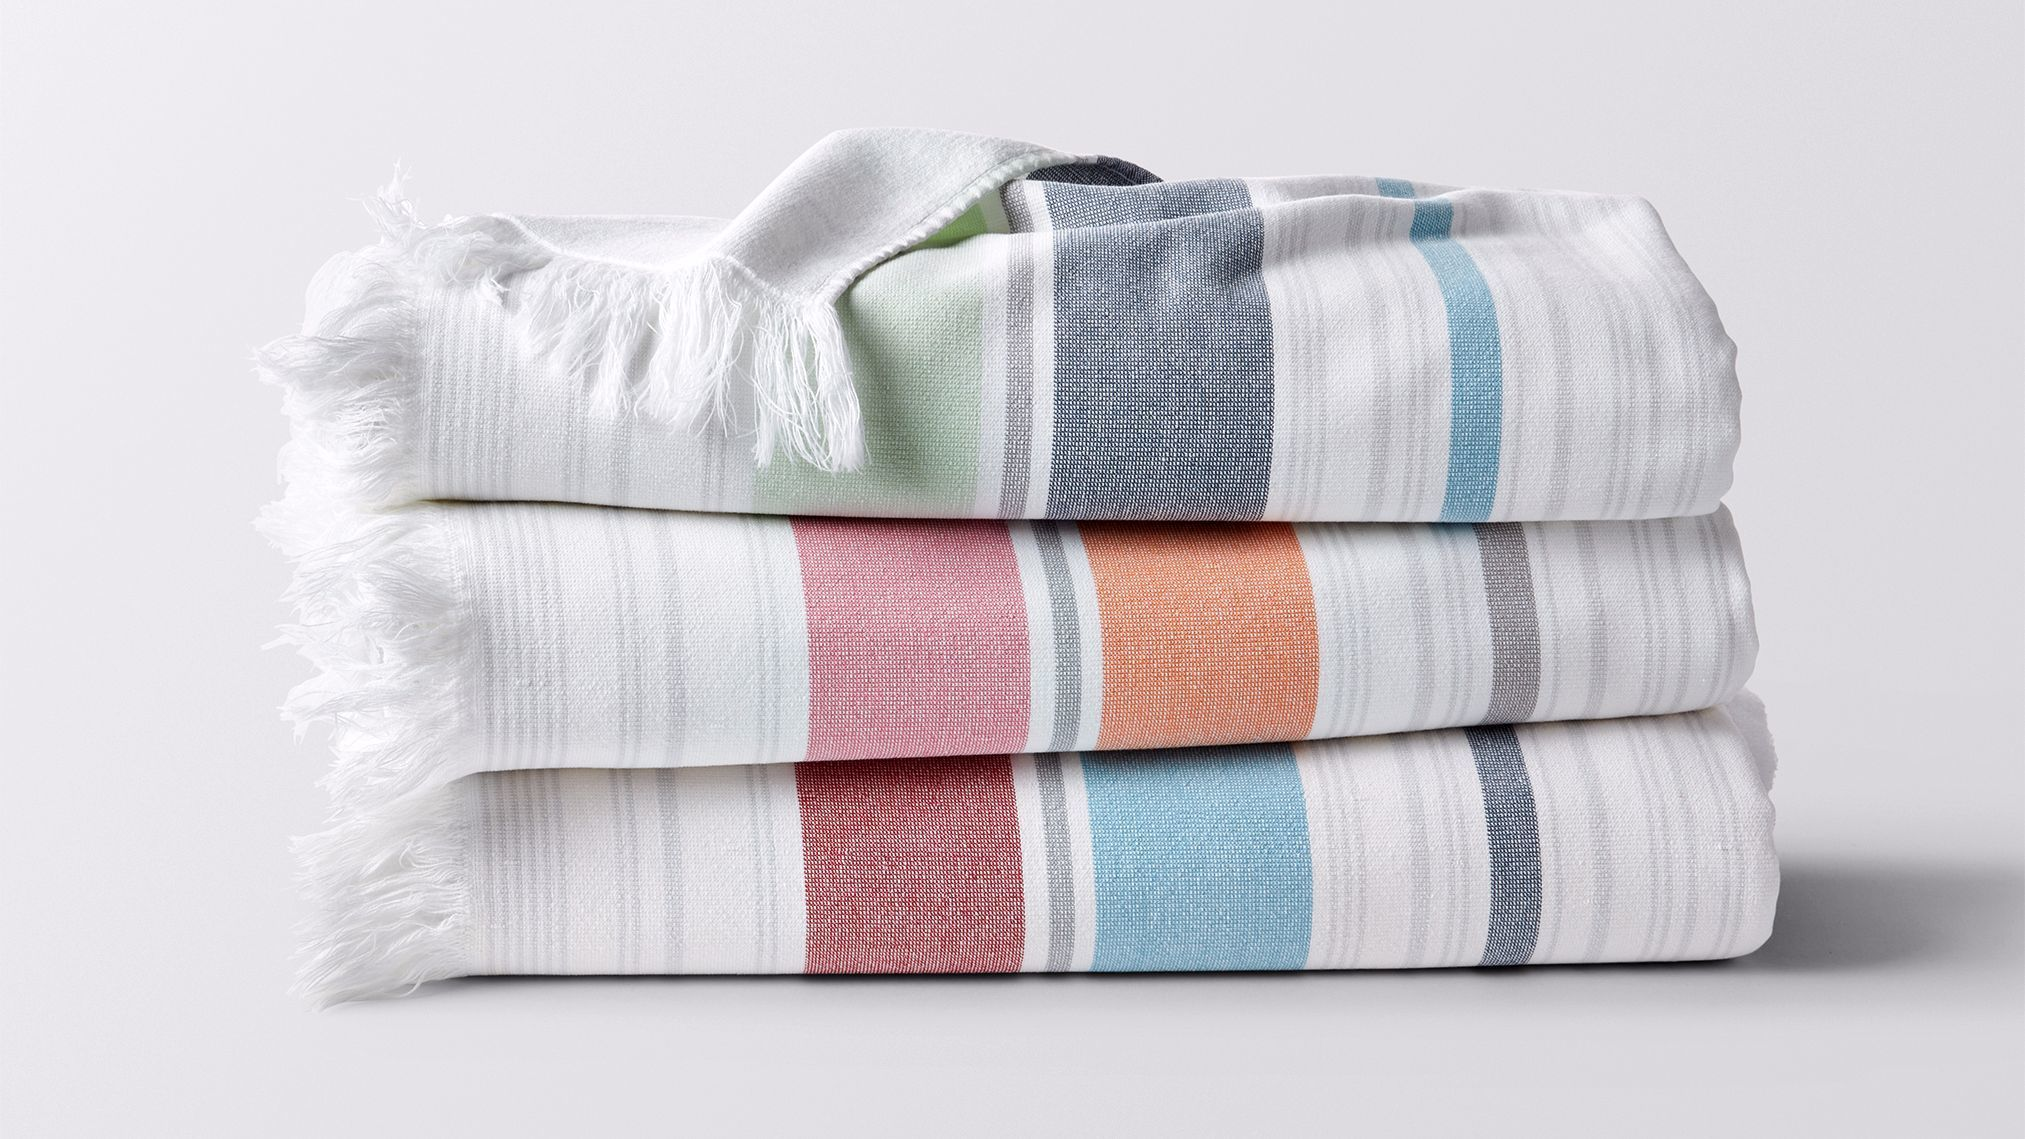 Bolinas beach towels from Coyuchi. $78. Photo credit: Coyuchi